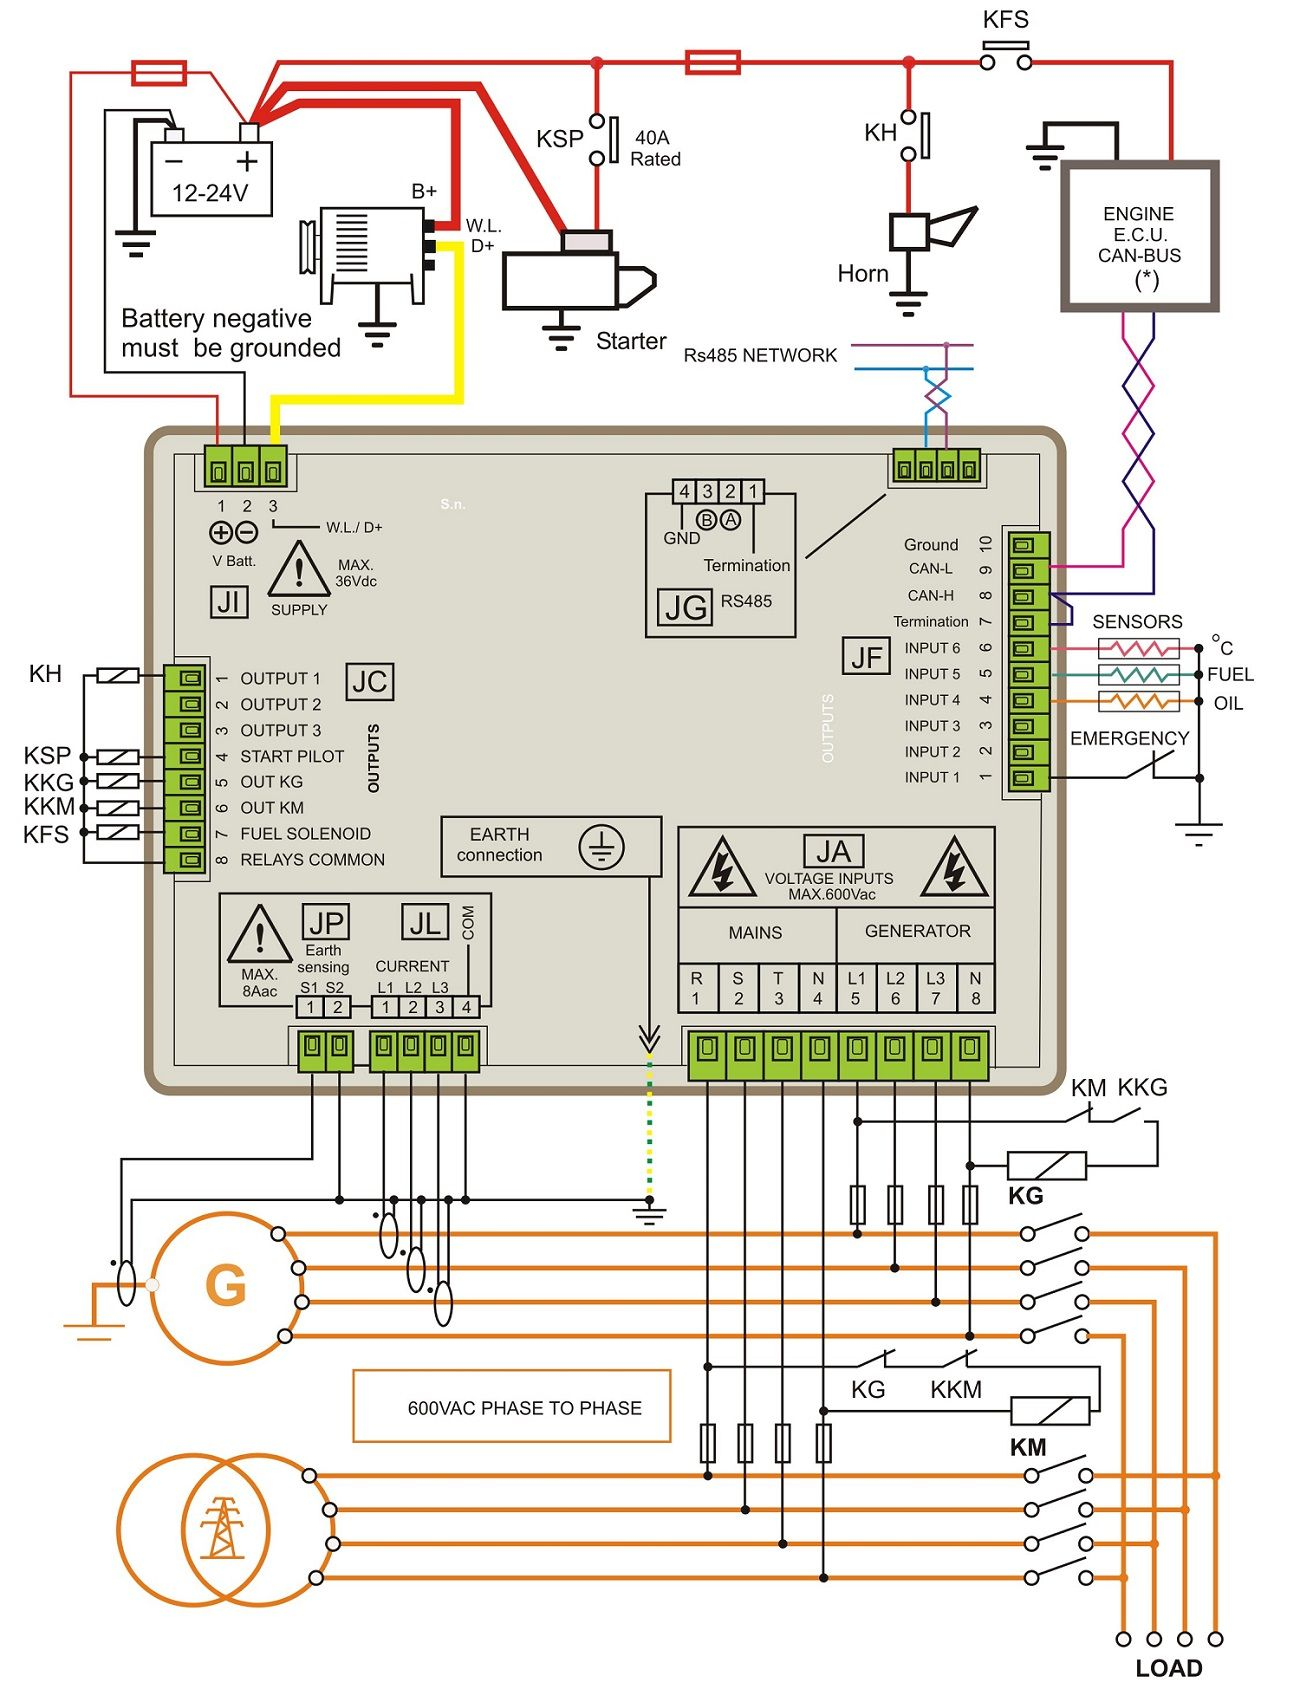 generator control panel for industrial applications diagram jpg  generator control panel for industrial applications diagram jpg (1300×1702)